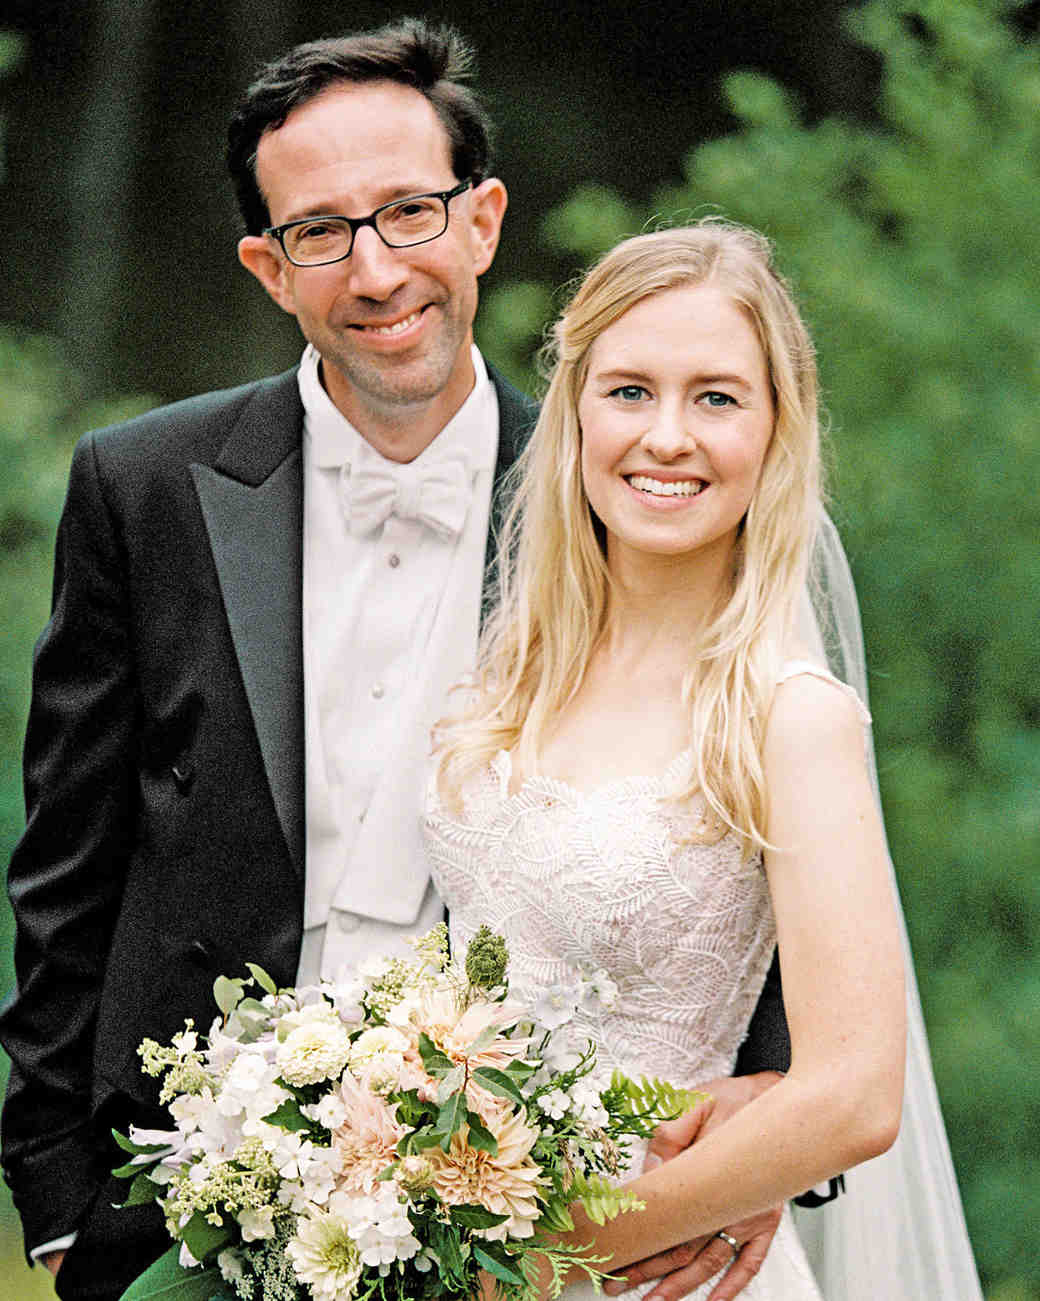 adele seth wedding michigan couple